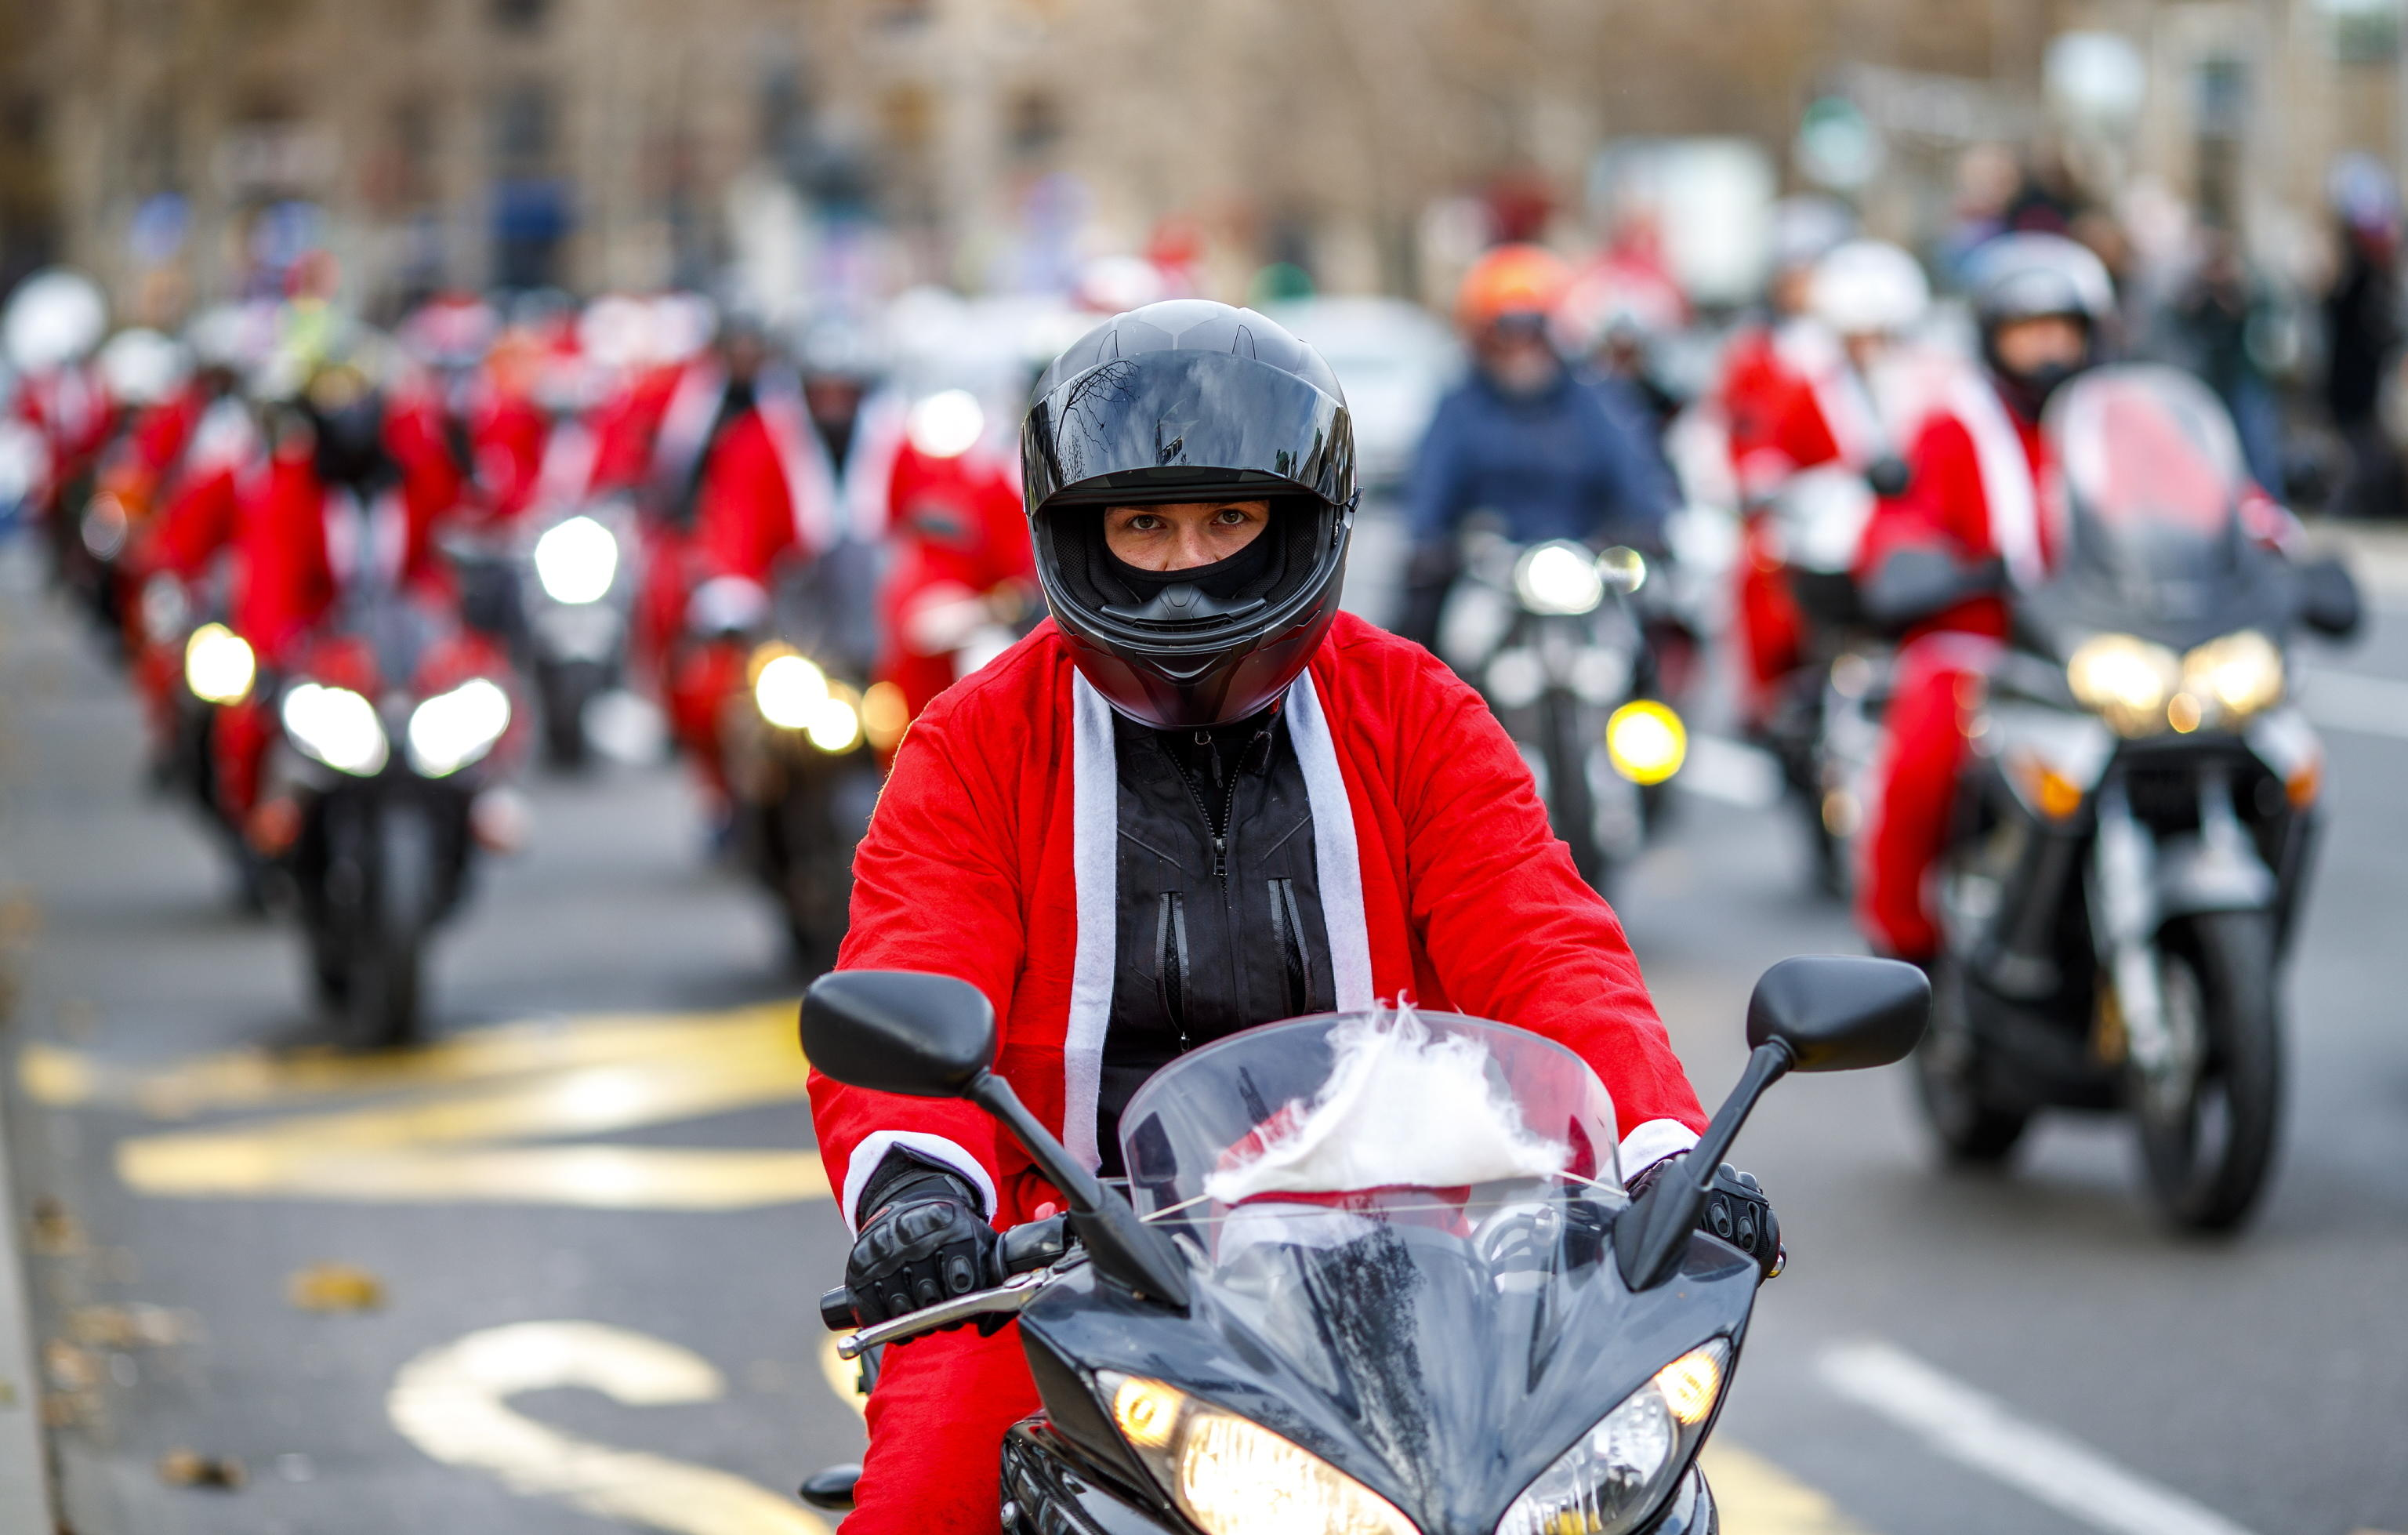 epa08084753 A Serbian motorcyclists dressed in Santa costume drive through the streets of the city center of Belgrade, Serbia, 21 December 2019. A group of Serbian motorcycle enthusiasts gathered in the Serbian capital for a joint ride to the bring Christmas gifts for underprivileged children.  EPA/SRDJAN SUKI